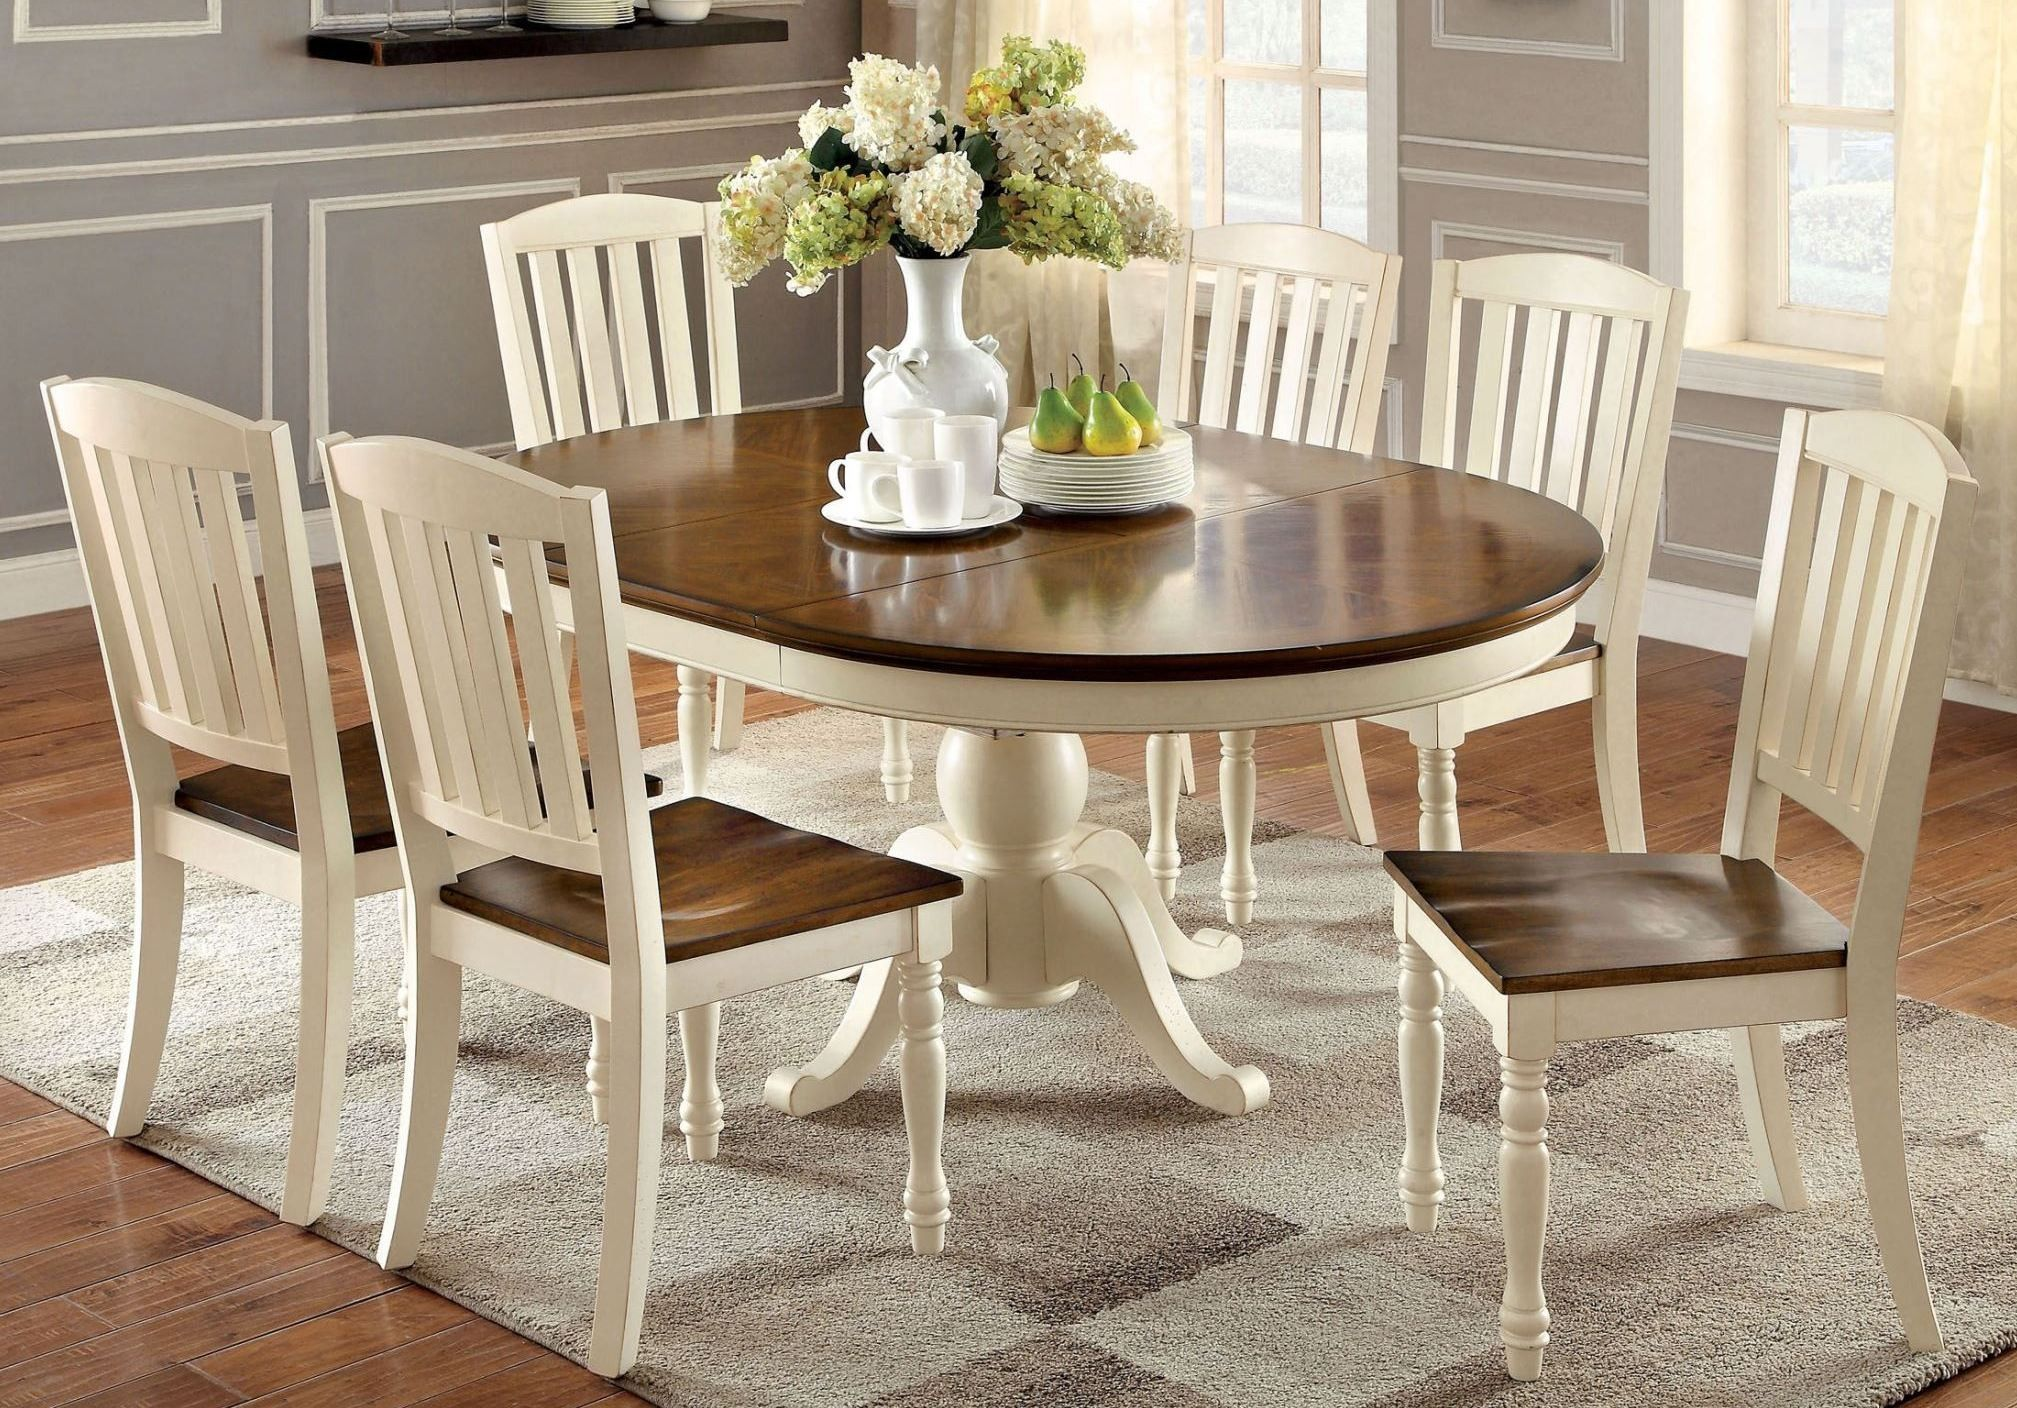 Harrisburg Vintage White And Dark Oak Oval Extendable Dining Room Set Oval Dining Room Table Dining Room Small Oval Table Dining